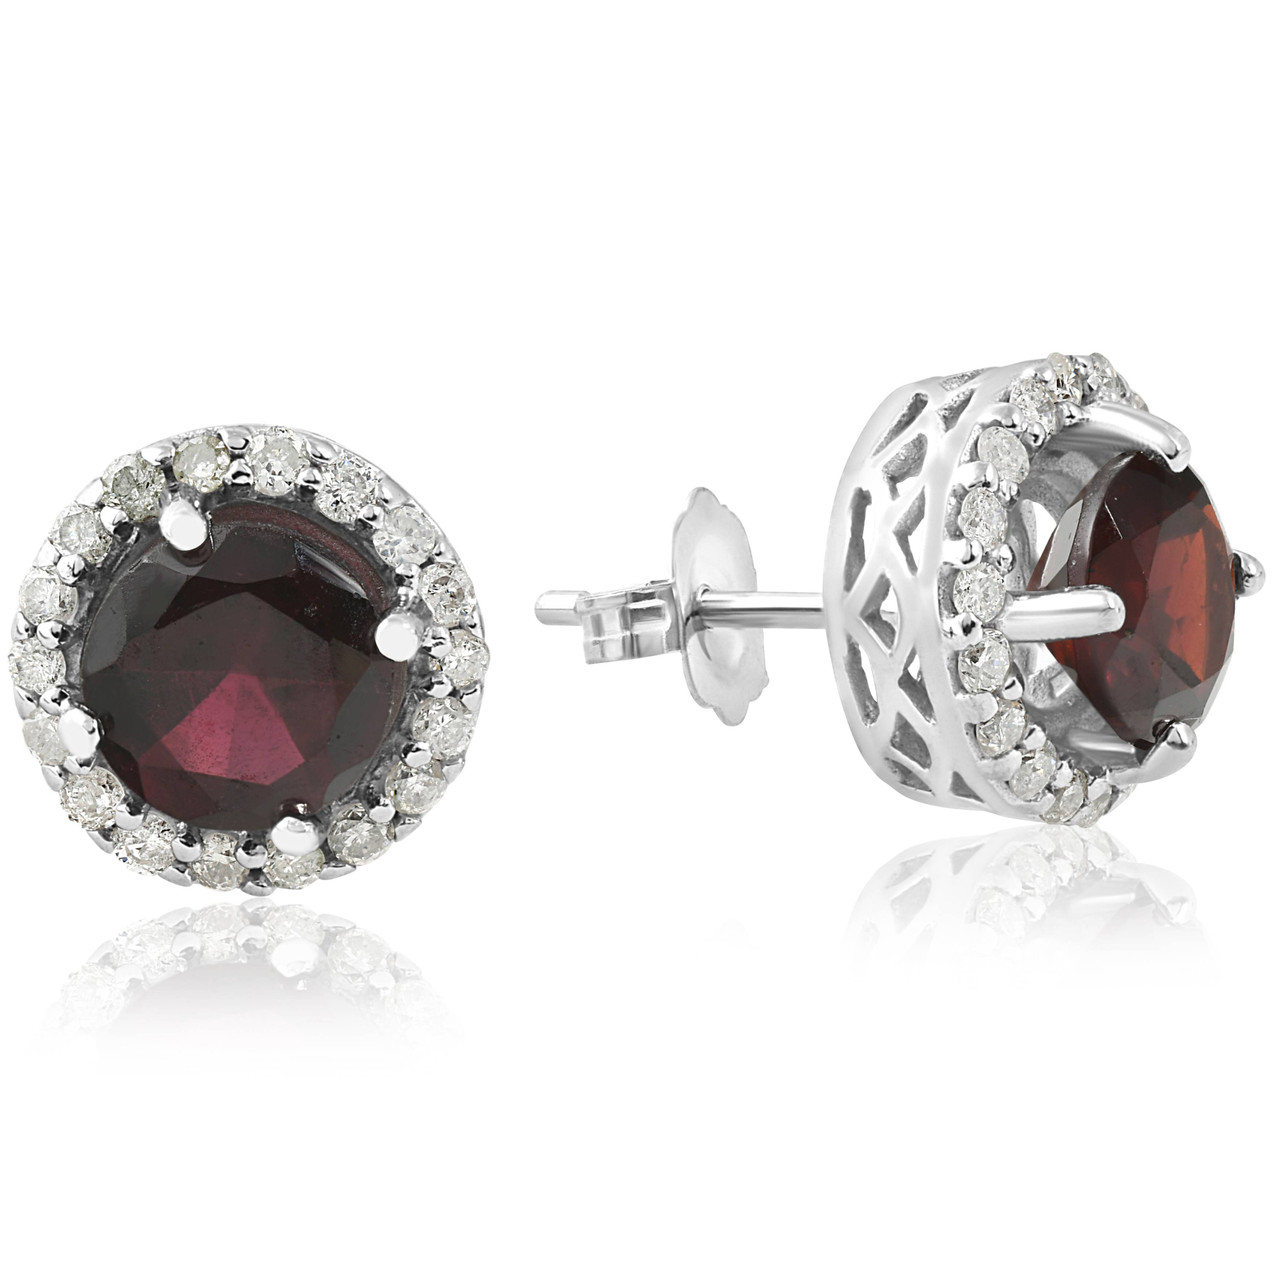 c88e5726f67e9a 2 1 10ct Diamond   Red Sapphire Gemstone Vintage Halo Earrings 14K White  Gold